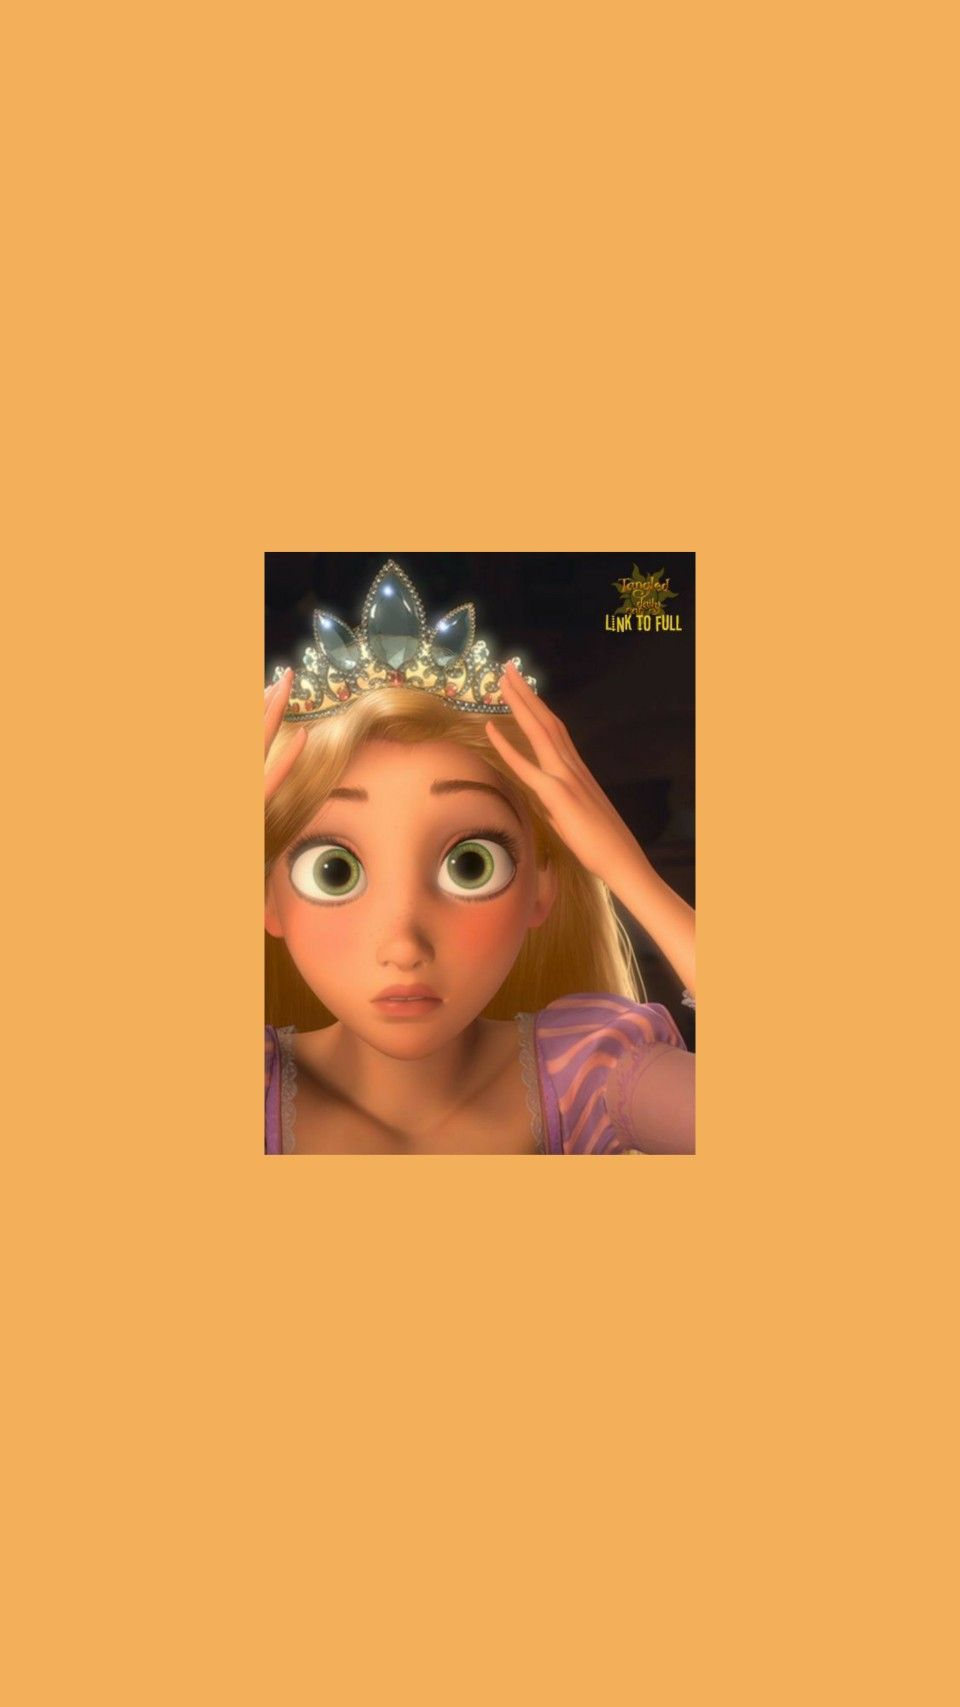 Pin By Rose On Aesthetic Wallpapers Disney Wallpaper Disney Princess Wallpaper Disney Characters Wallpaper